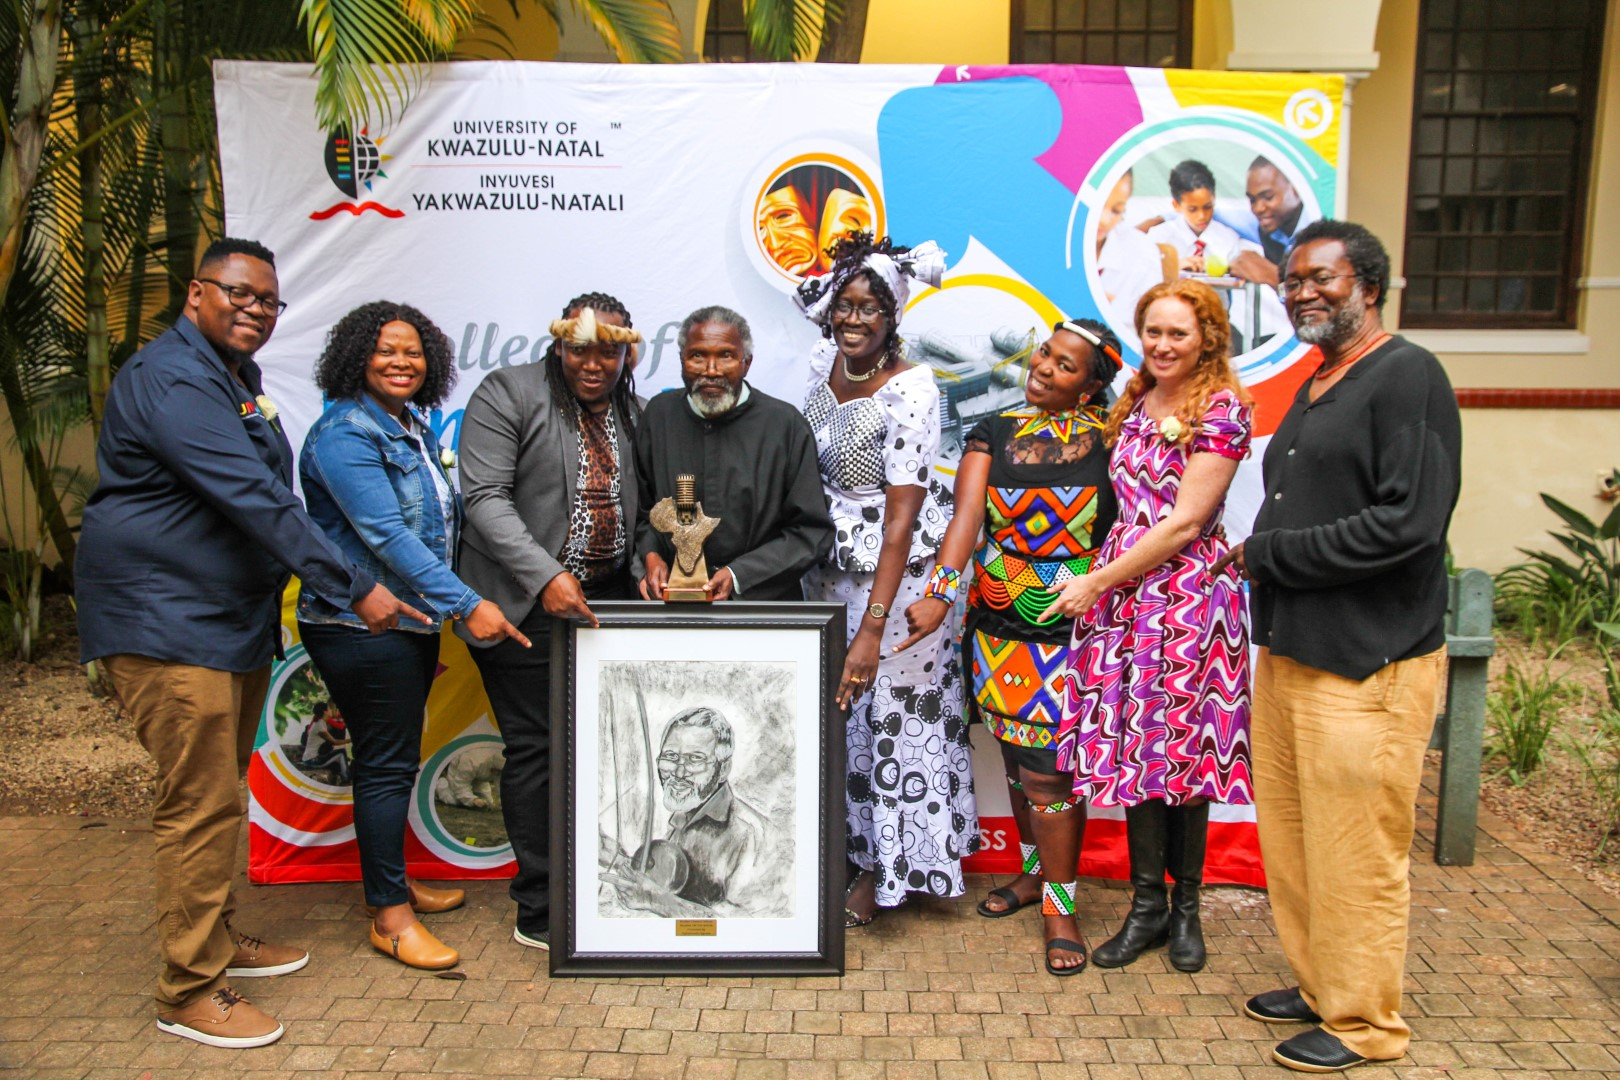 Brother Clement's life celebrated by the School of Arts